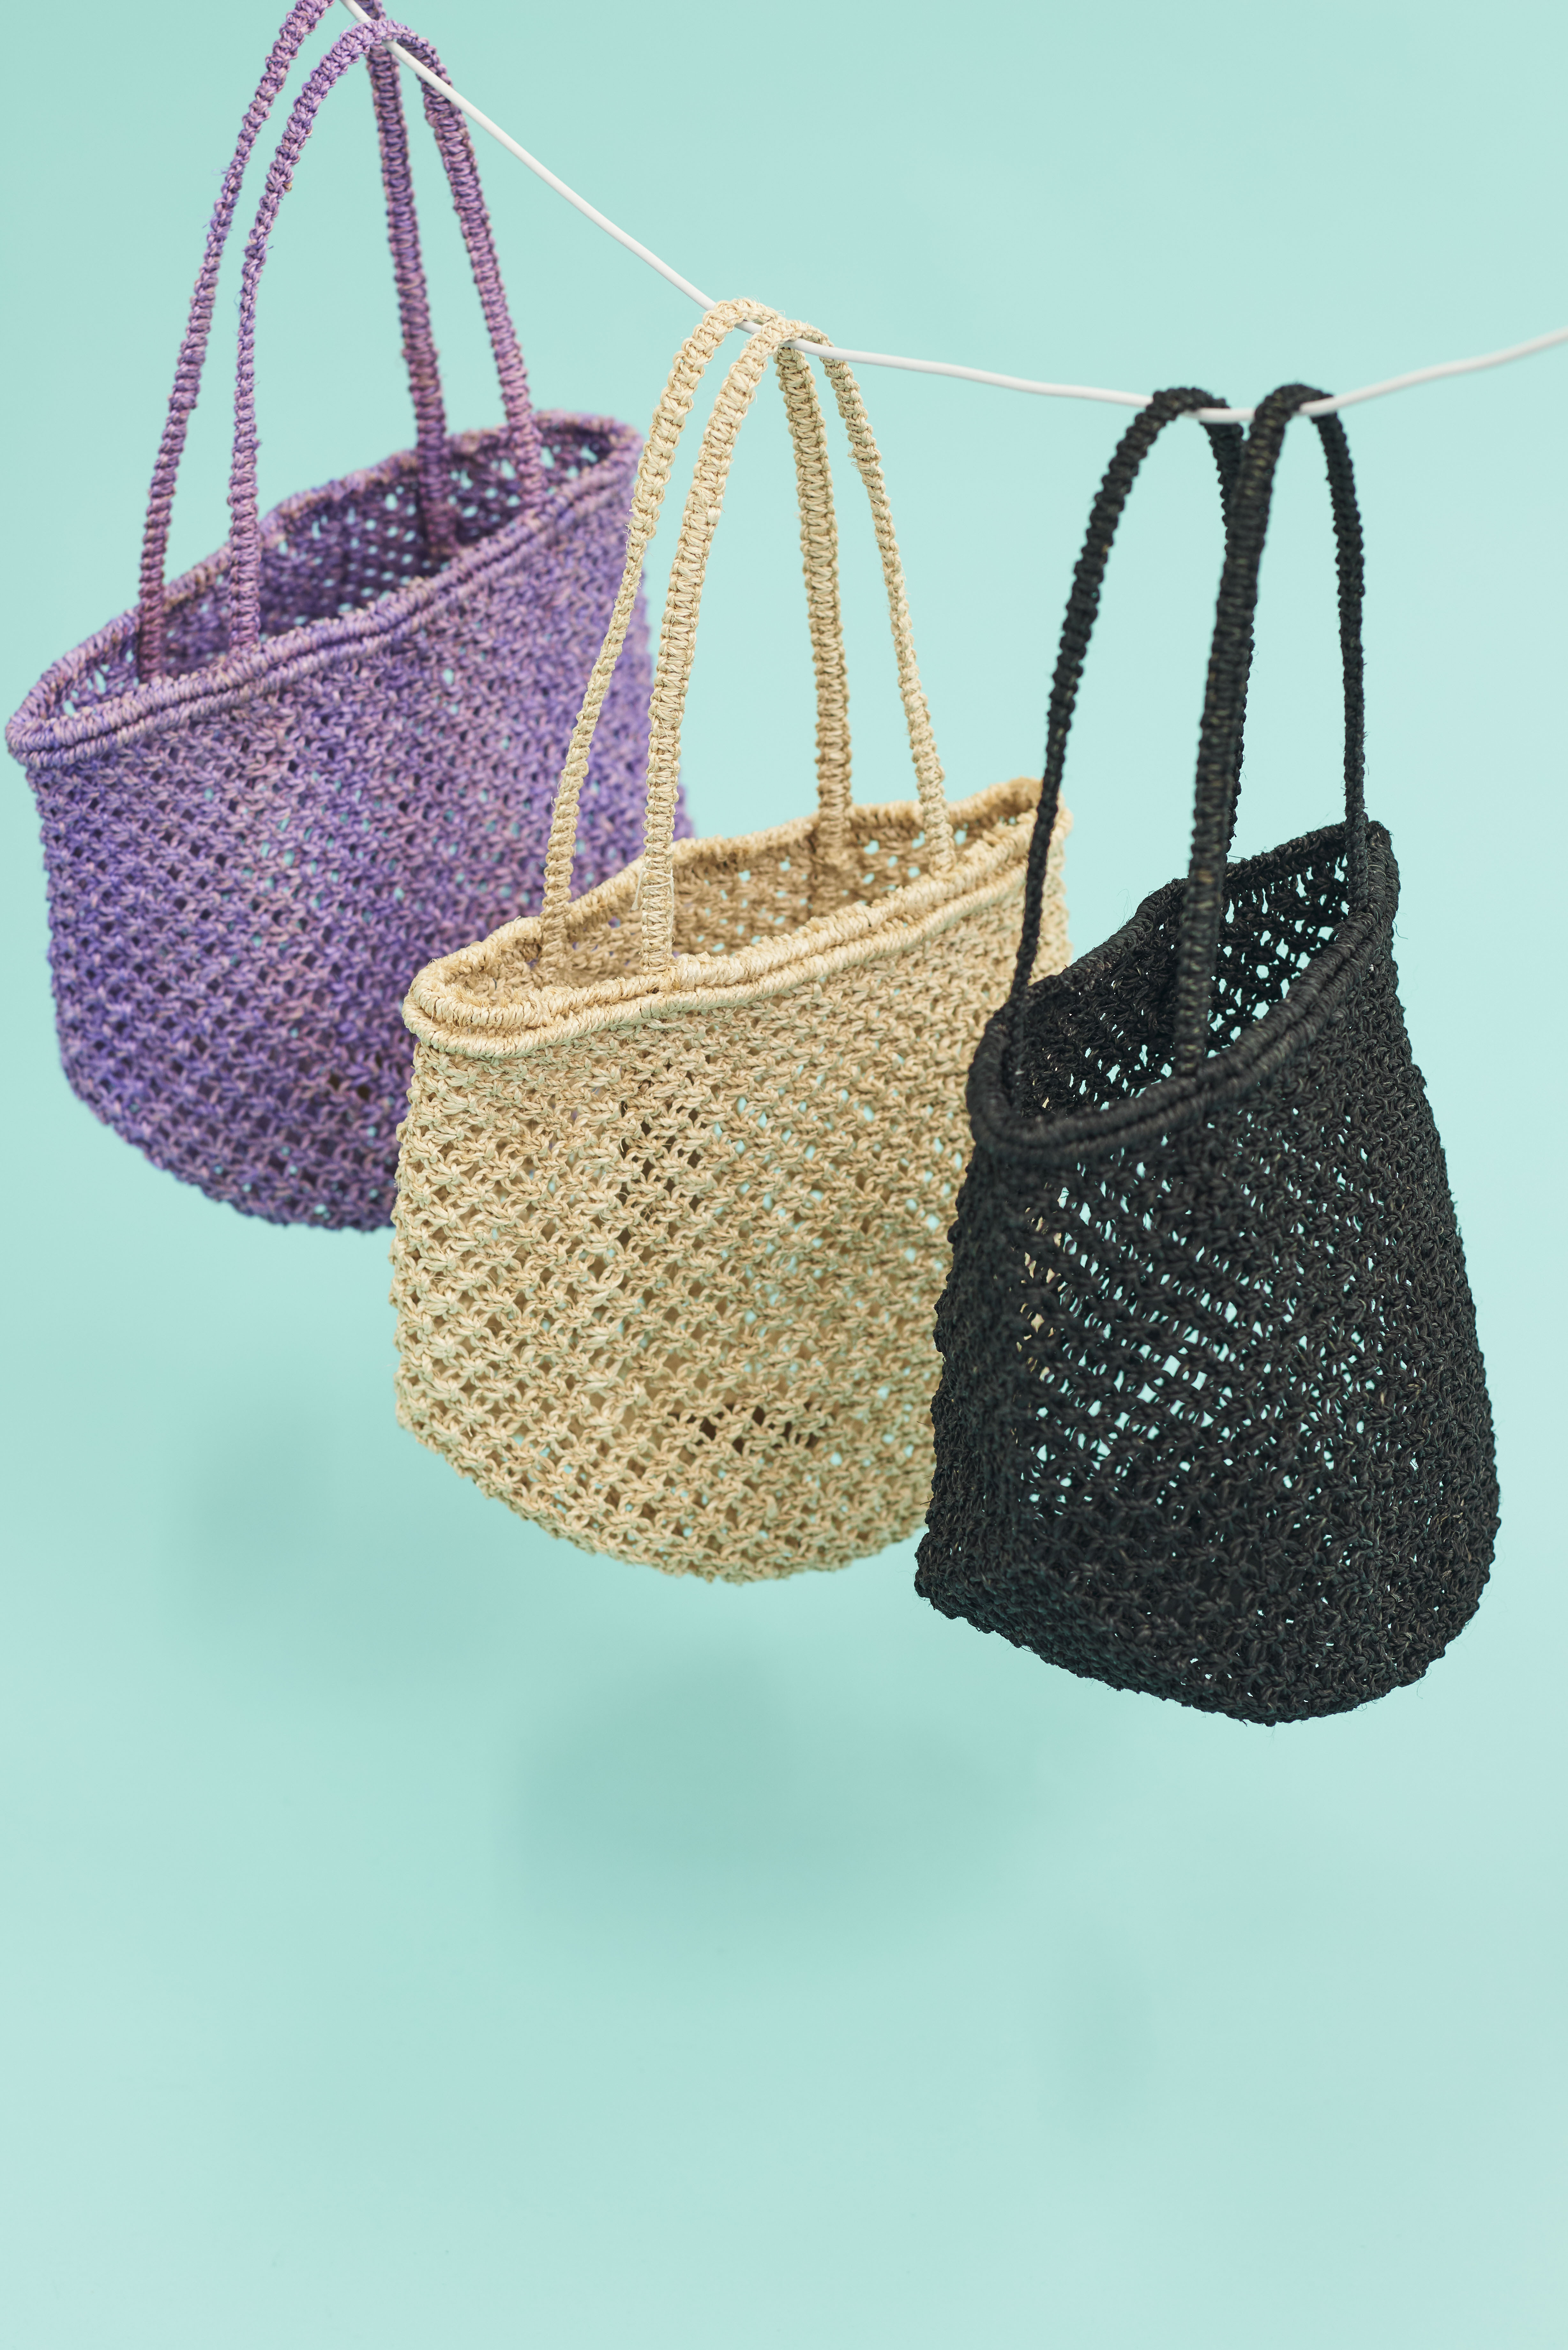 BAGMATI basket bag